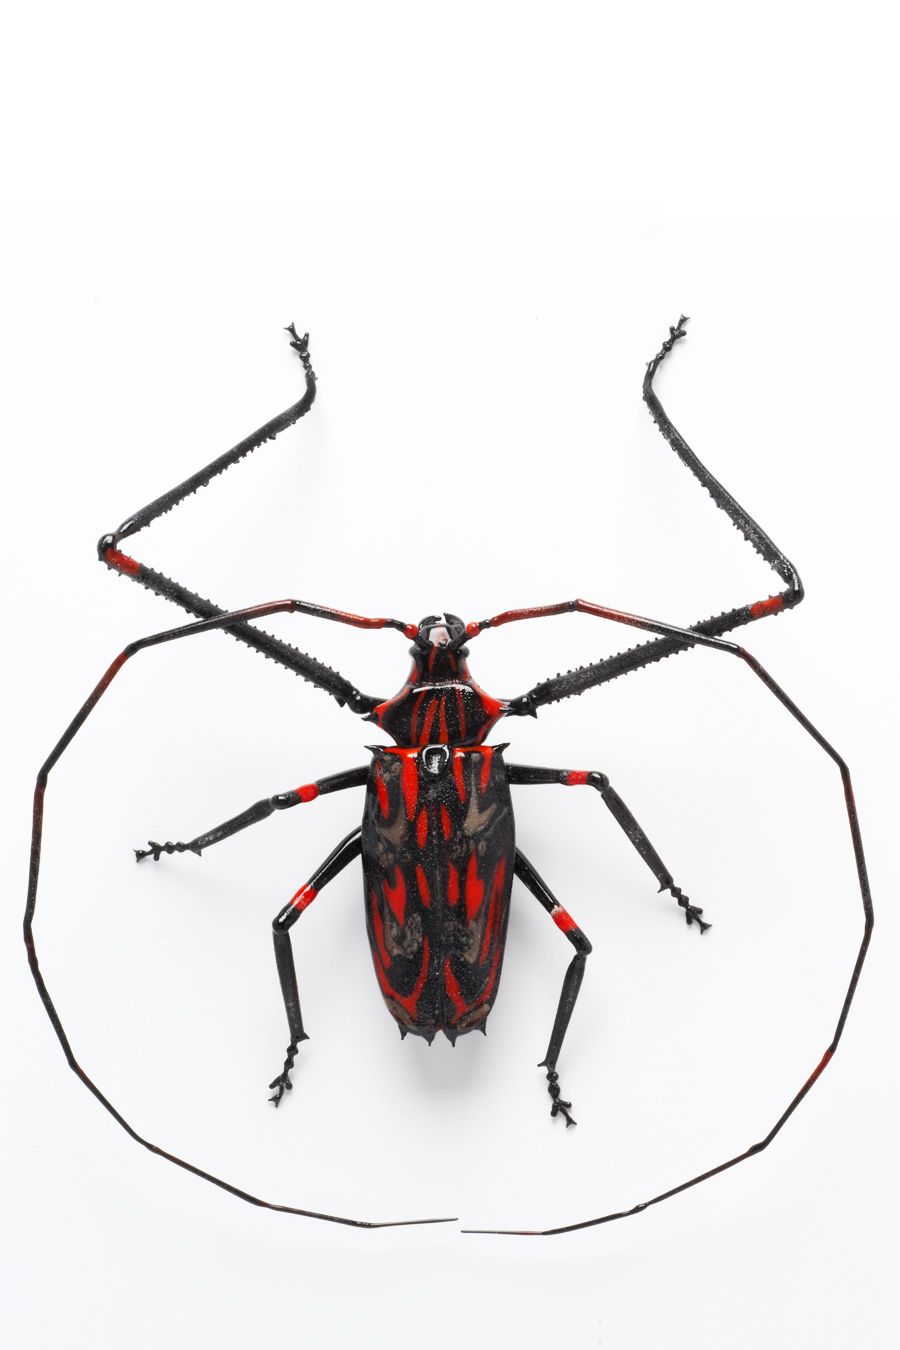 Vittorio Costantini,  Euphosos (Snout Beetle)  (2007, soda-lime glass, 6 5/8 x 5 7/8 x 1 3/4 inches), LT.108